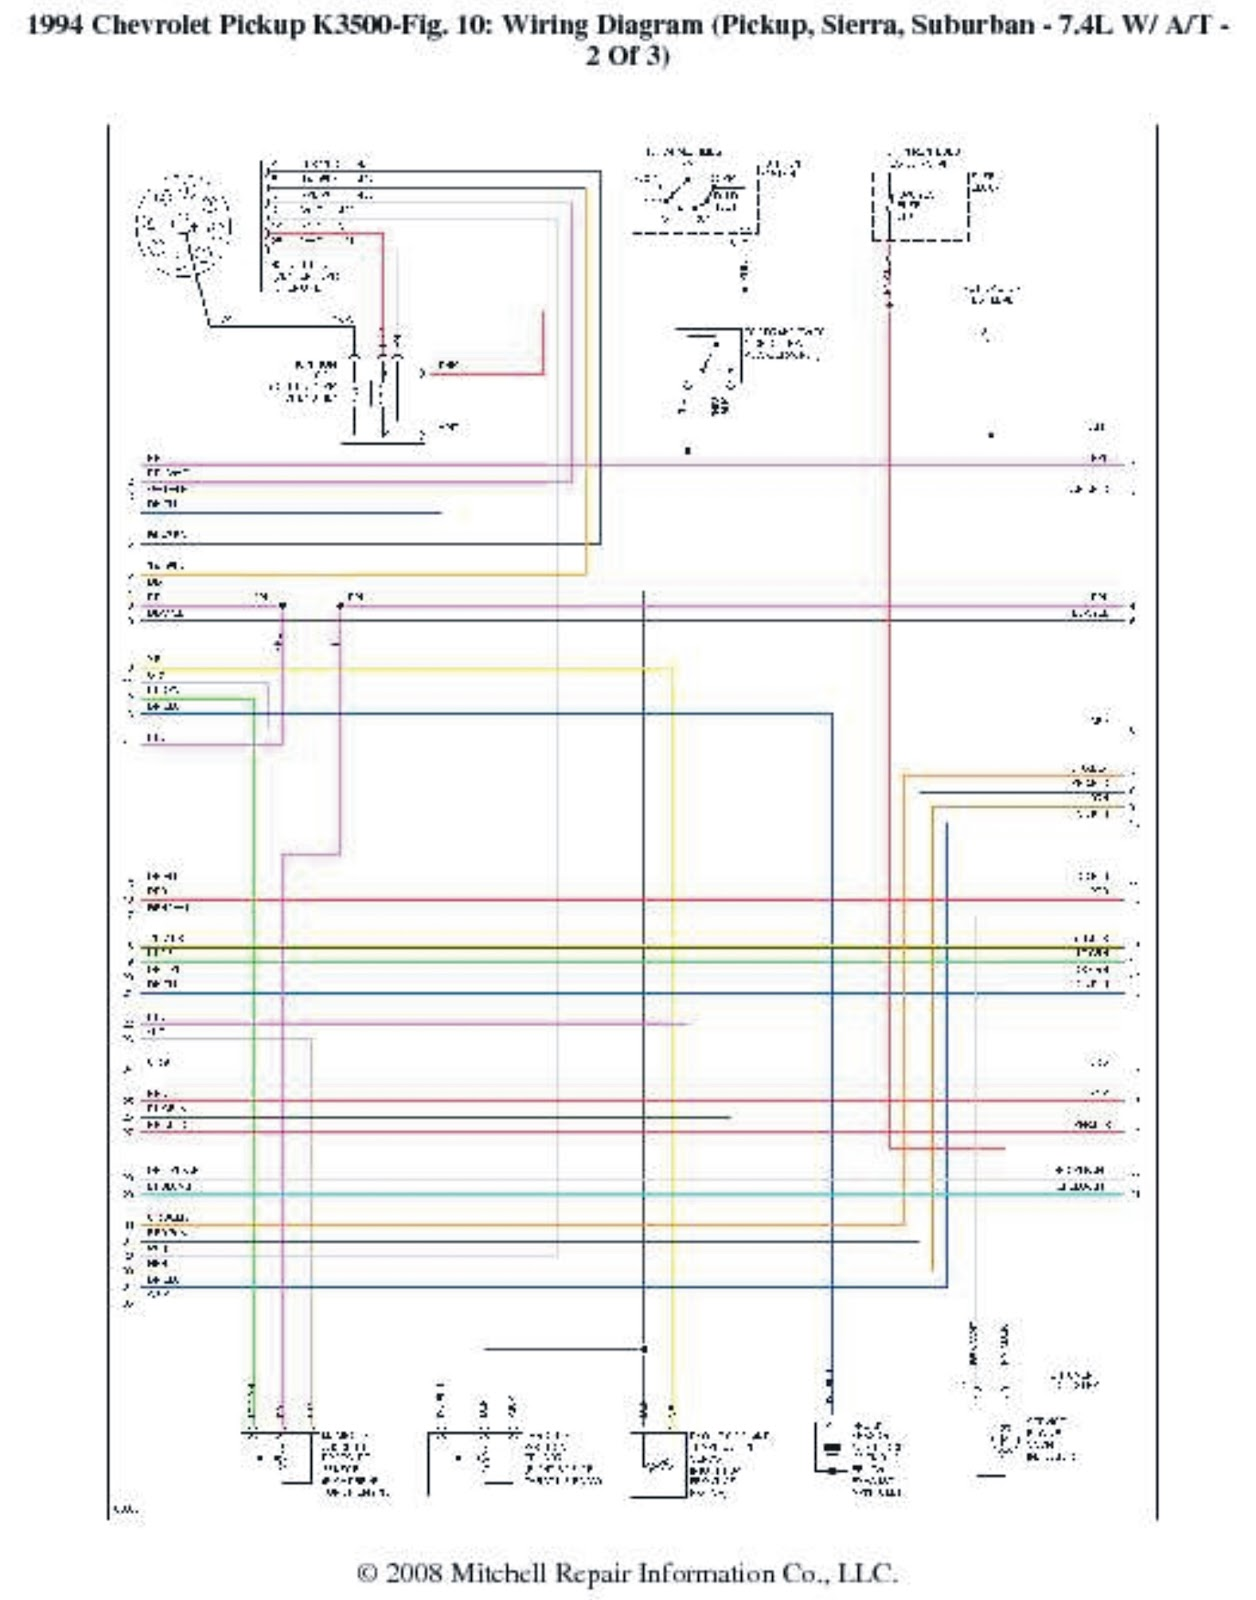 1994 audi s4 wiring diagram 27 wiring diagram images 1993 chevy 3500 wiring diagram 1993 chevy silverado wiring diagram [ 1256 x 1600 Pixel ]